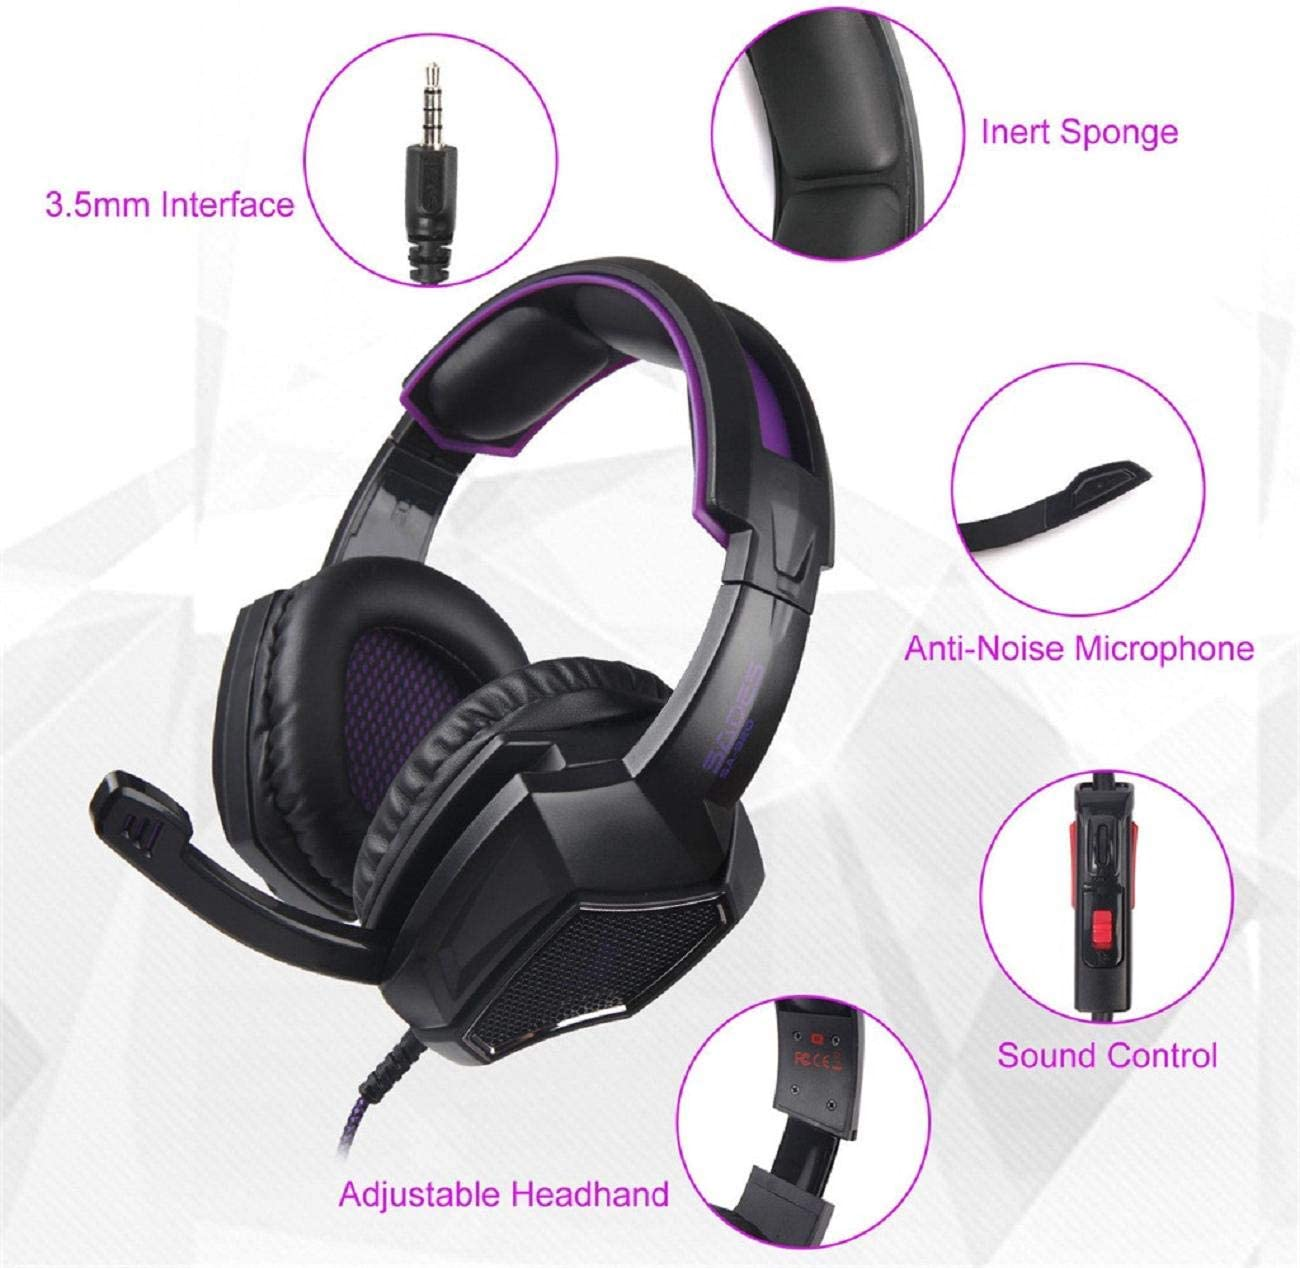 Cinhent On Ear Headphones Lightweight Portable SADES SA921 Plus Wired Gaming 3.5 Headphones with Microphone Noise-Cancelling Earphone Headset for PS4 for Travel Work TV PC Cellphone